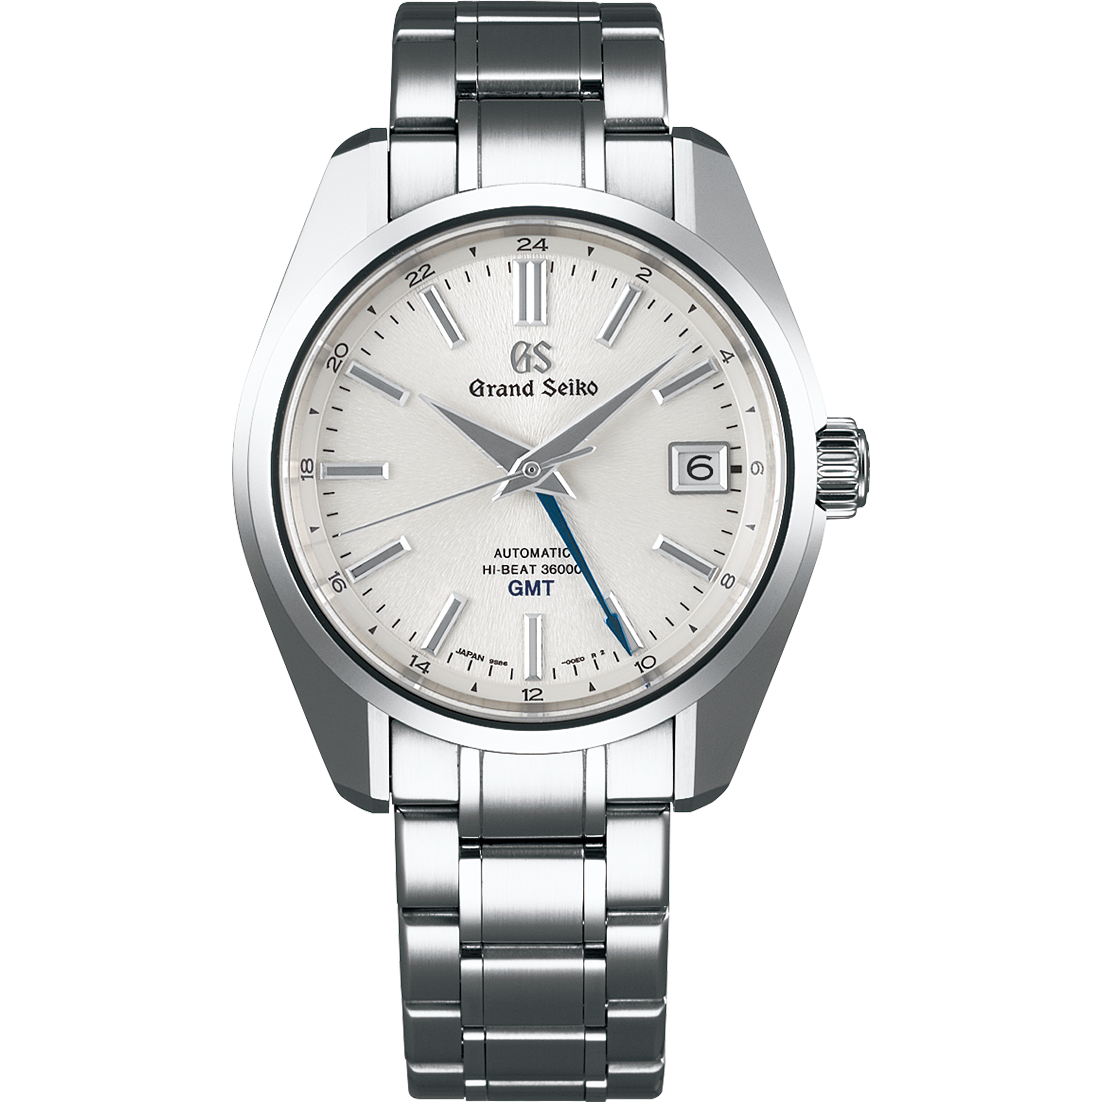 Grand Seiko Automatic GMT Watch